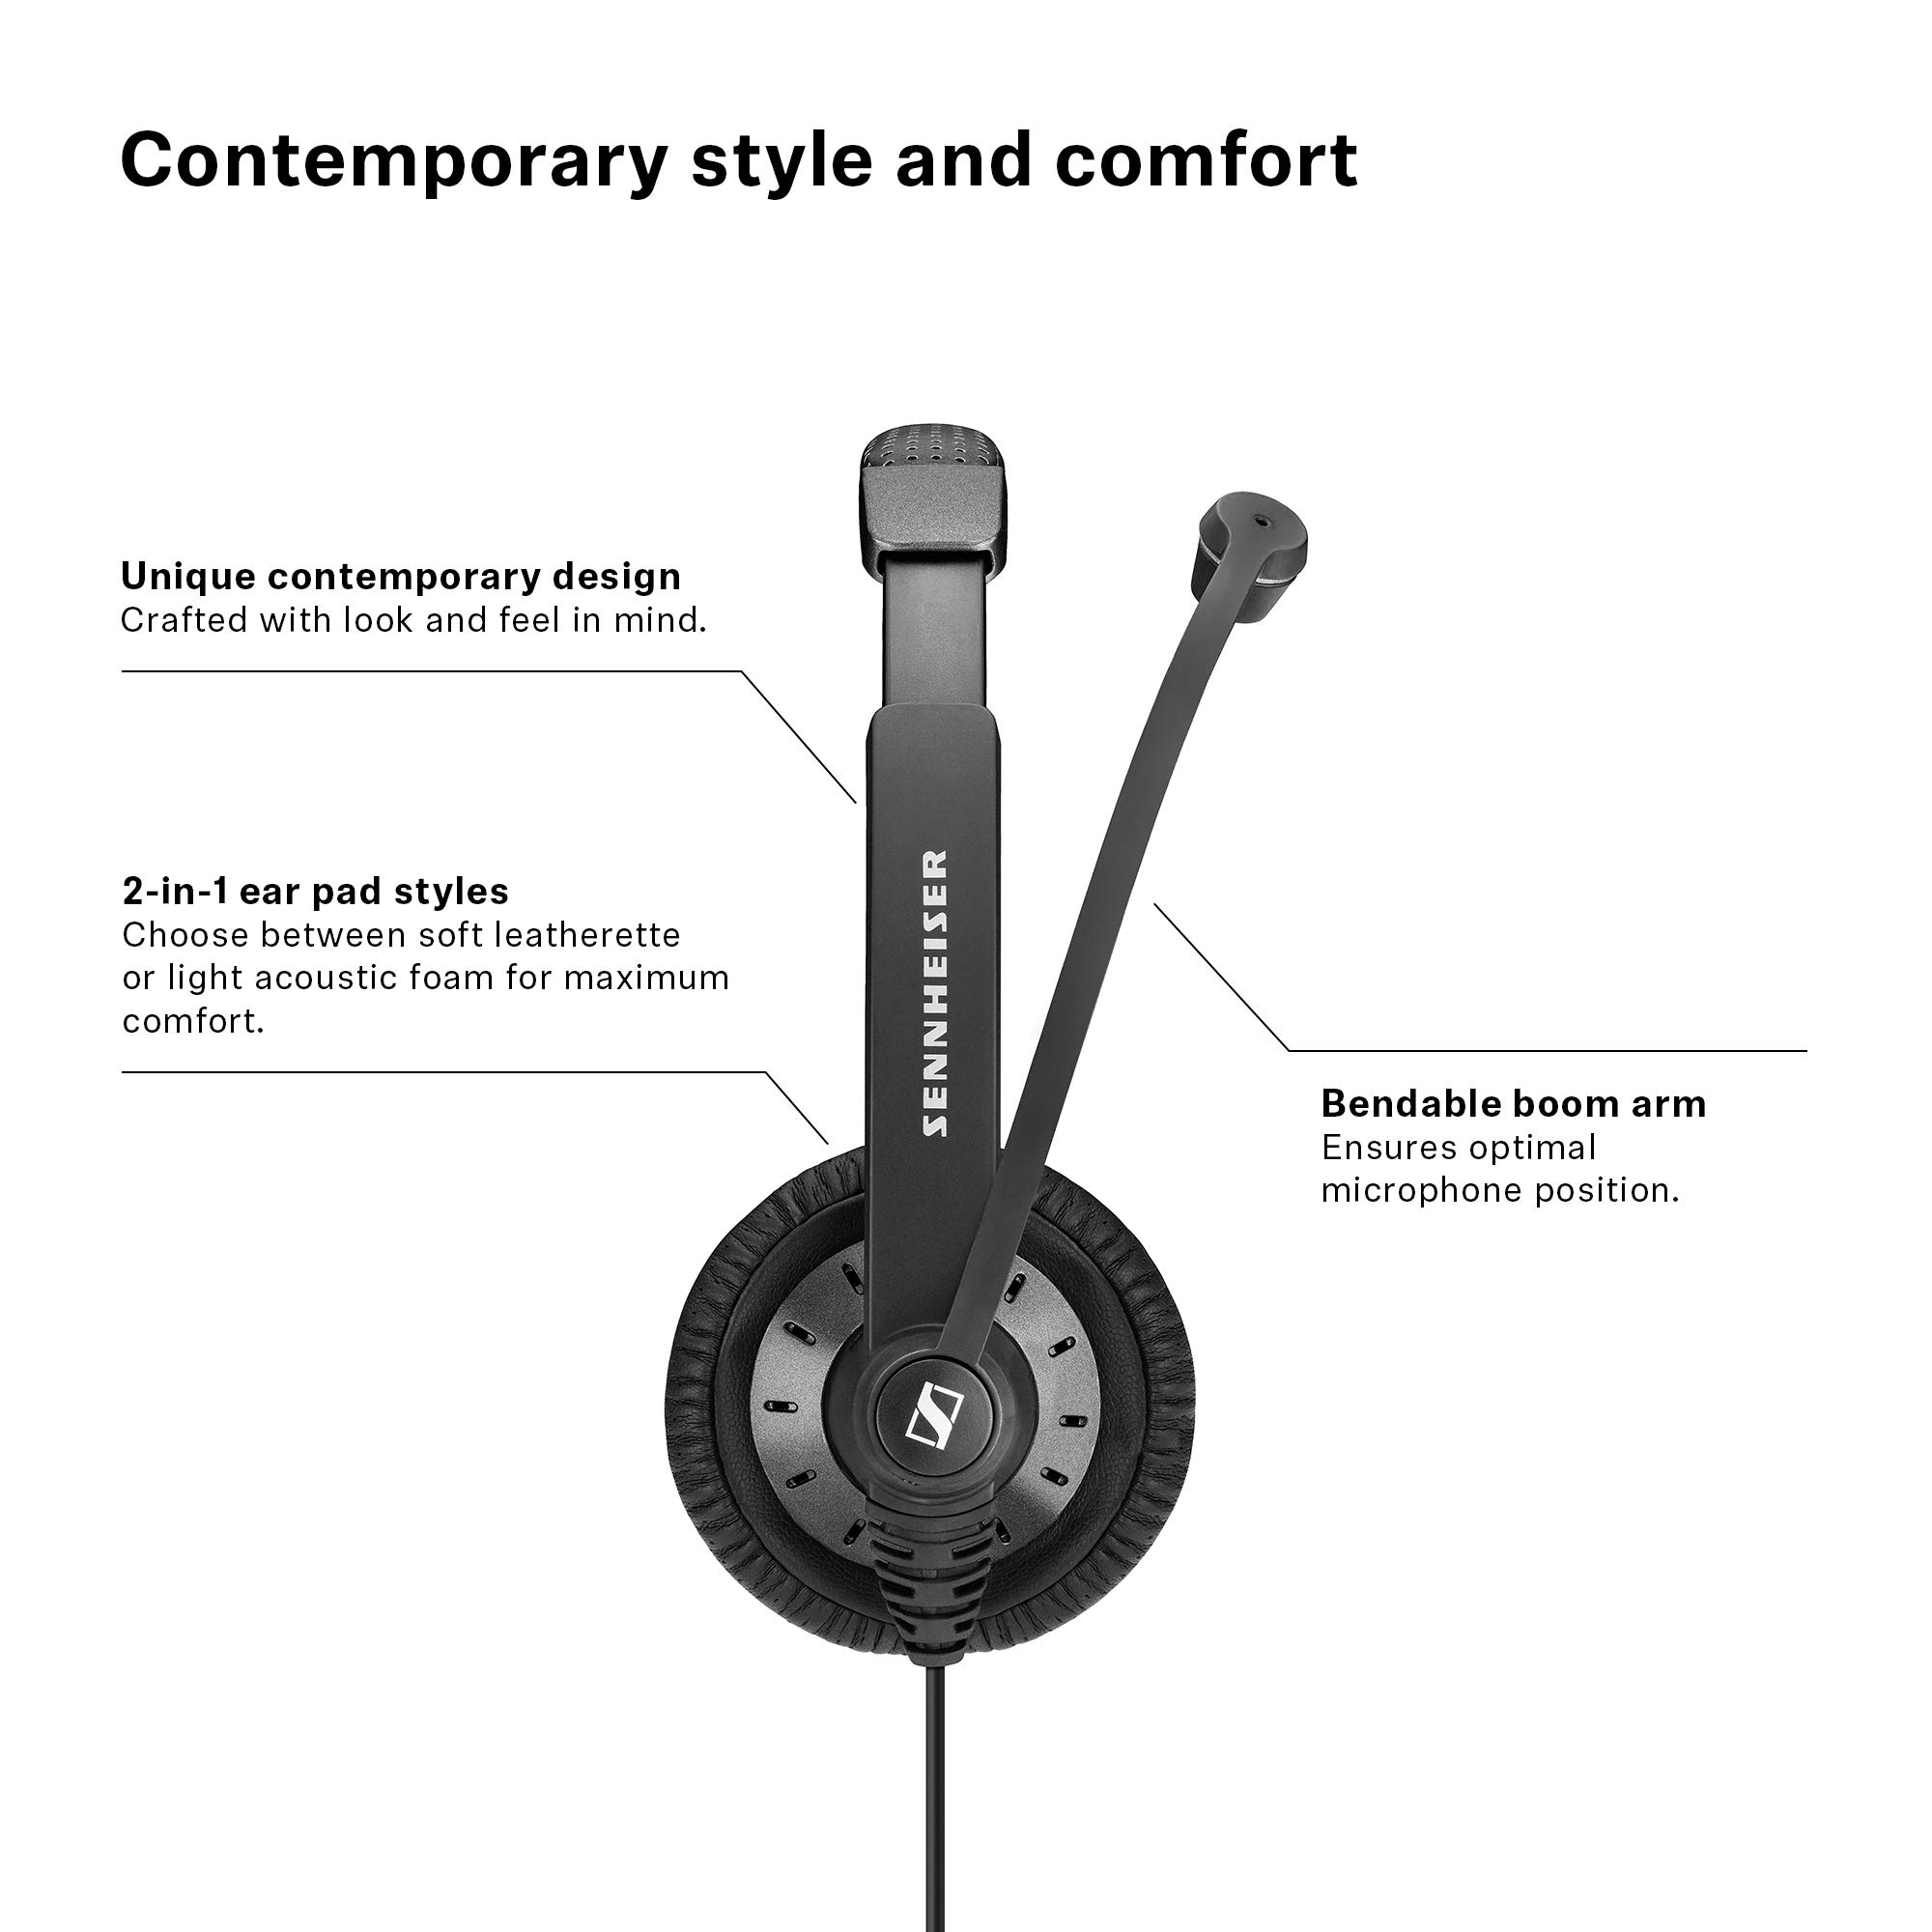 Sennheiser SC 75 (507085) - Double-Sided Business Headset | For Mobile Phone and Tablet | with HD Sound & Noise-Cancelling Microphone (Black) by Sennheiser Enterprise Solution (Image #4)